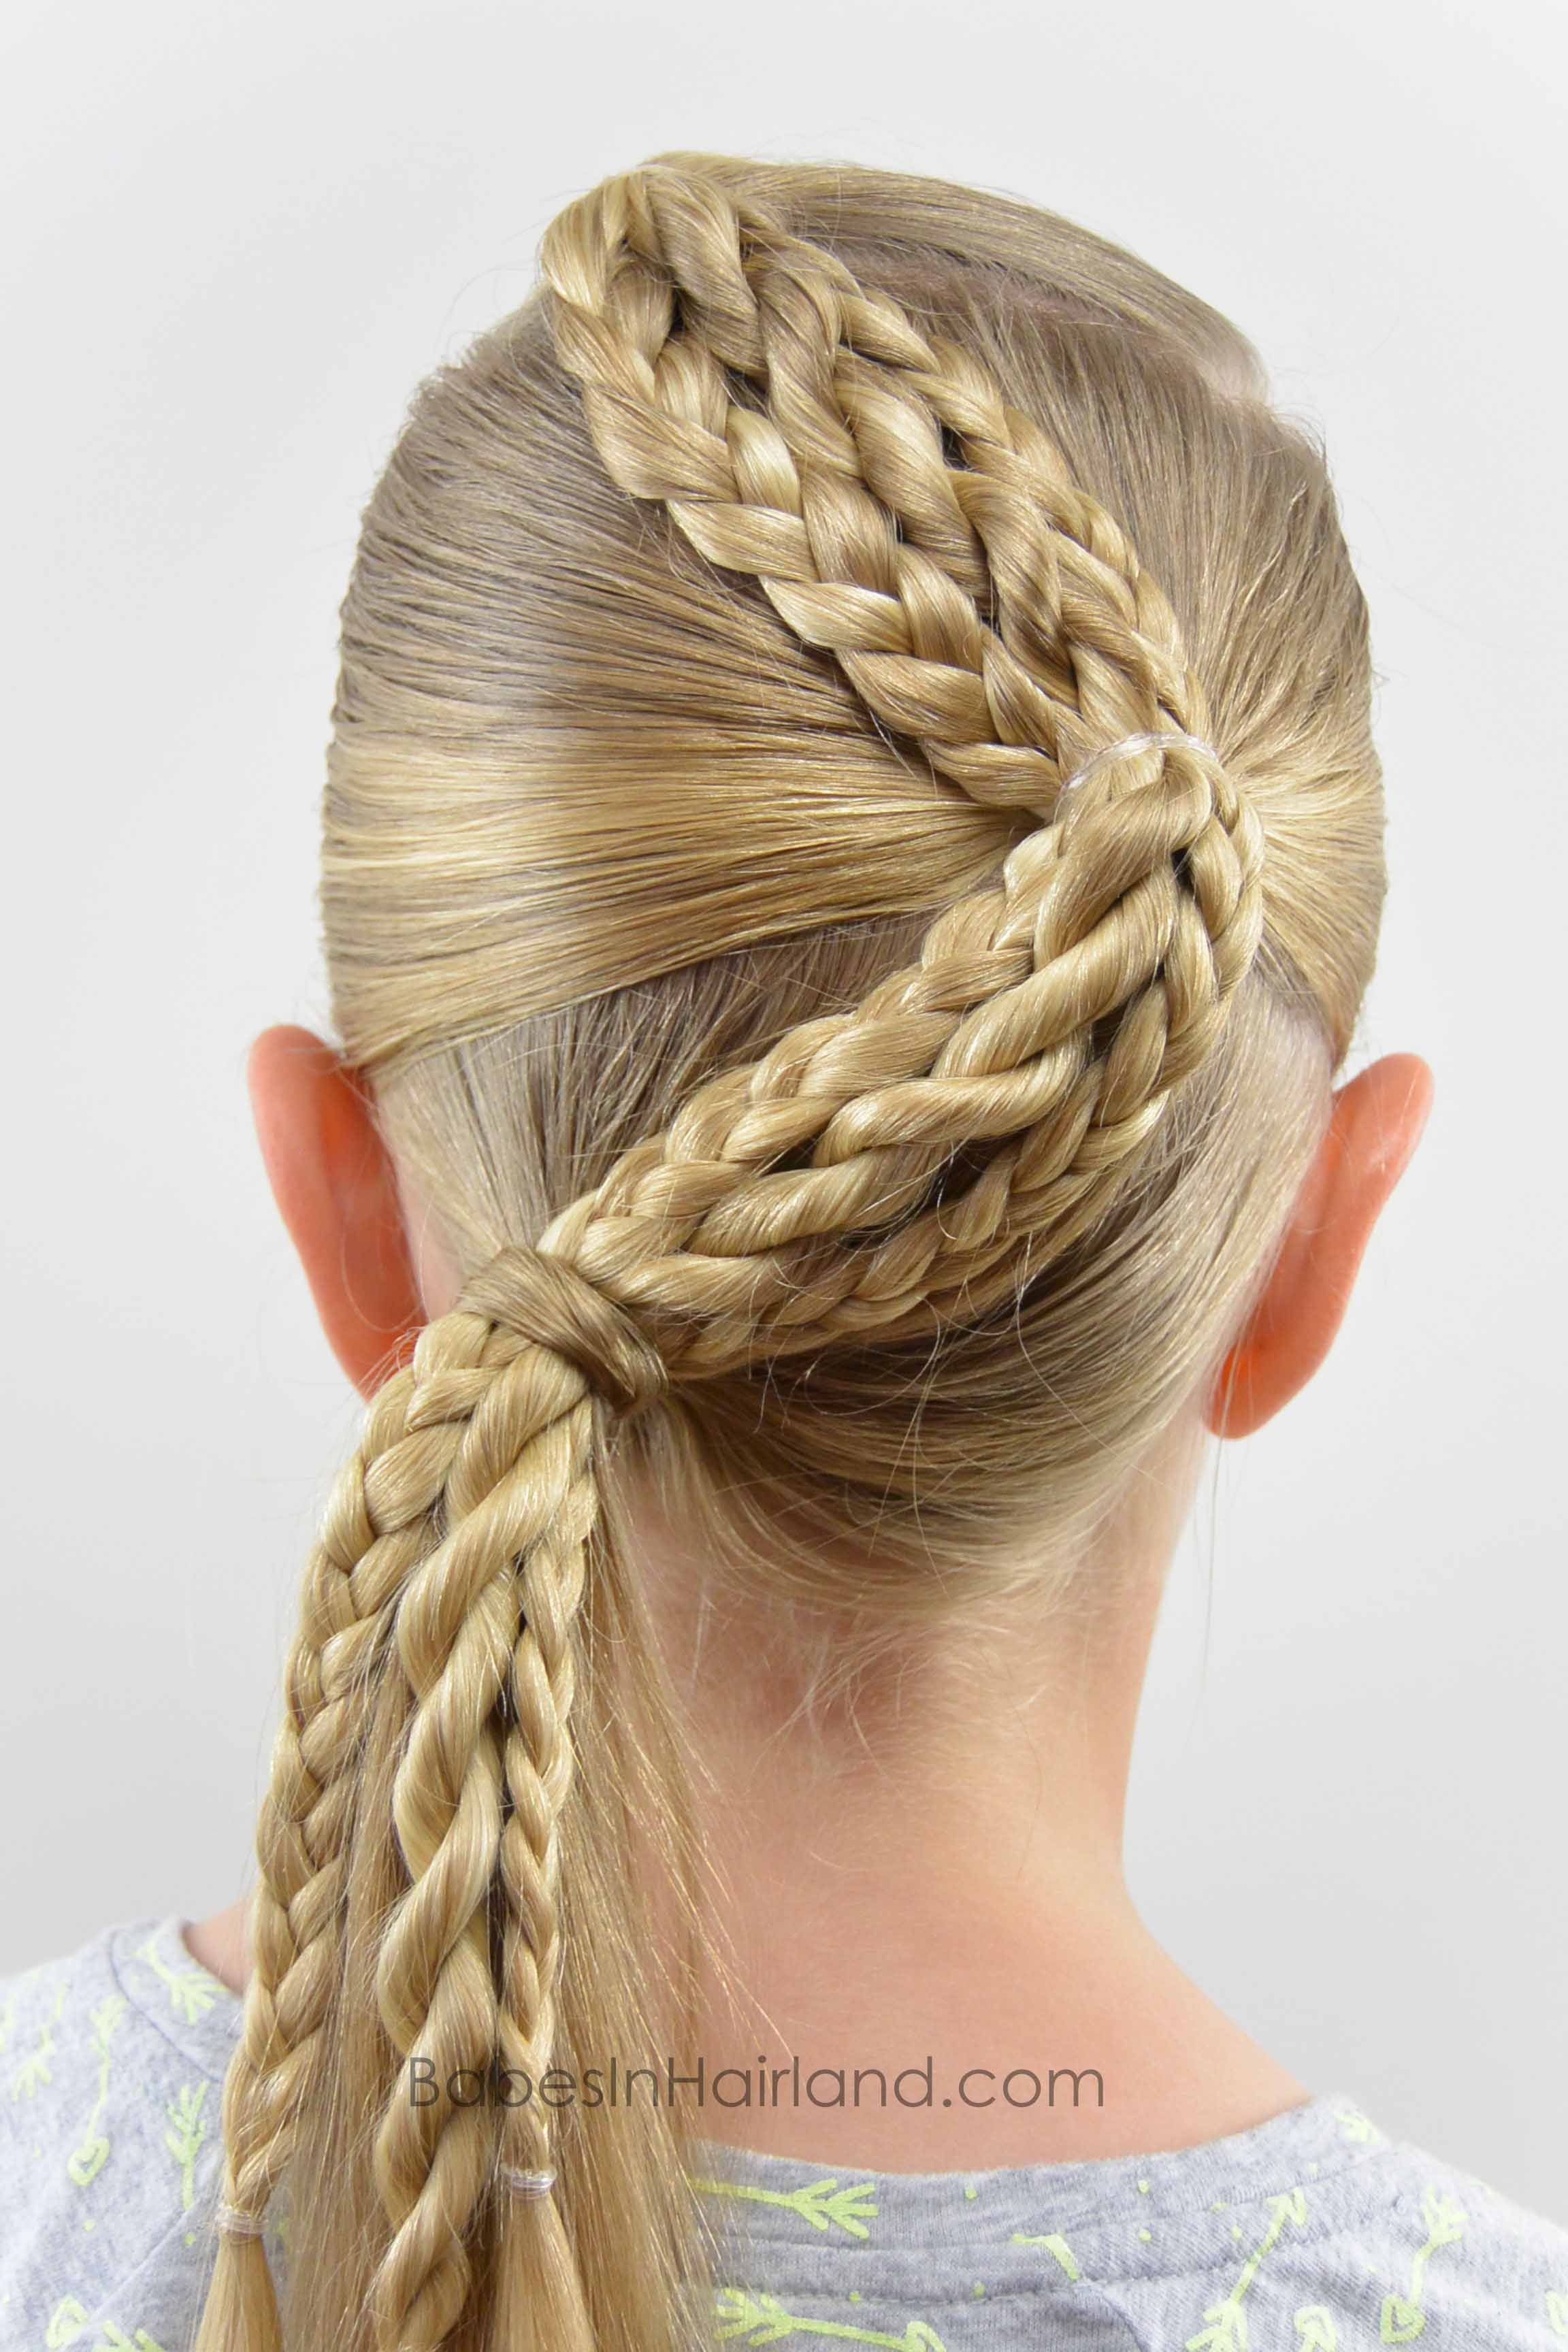 Zig zag braids from babesinhairland hair braids ponytail